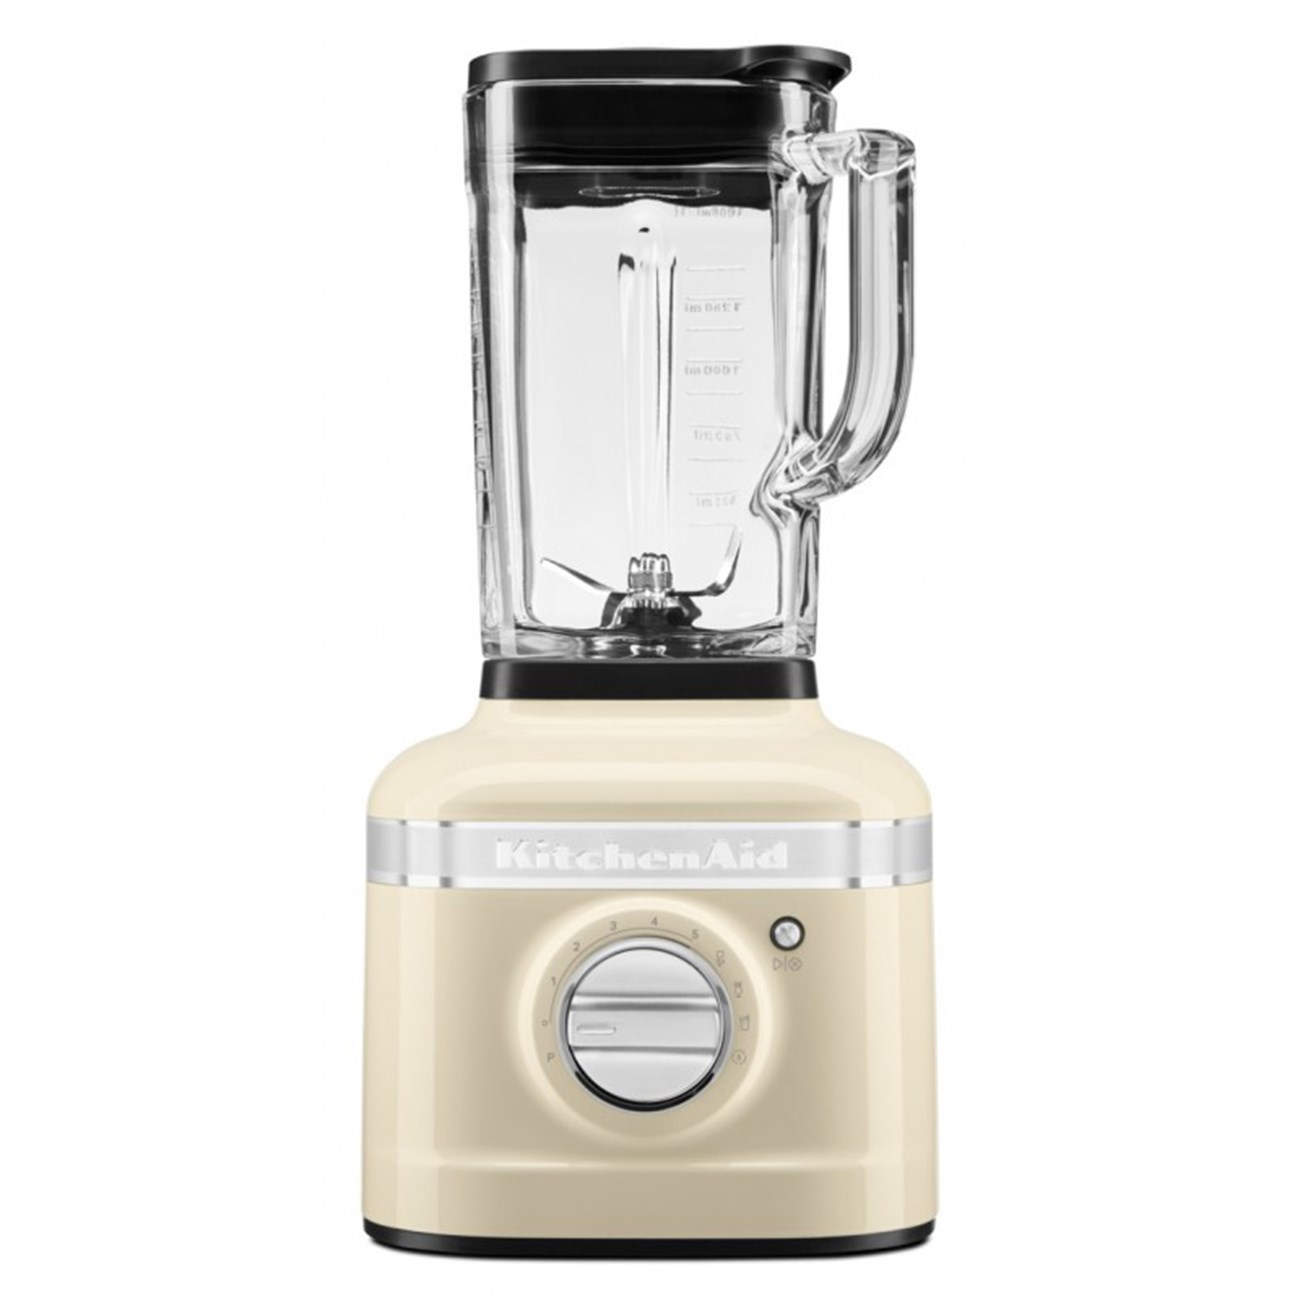 Kitchenaid K400 Artisan Blender - 5KSB4026 Almond Cream